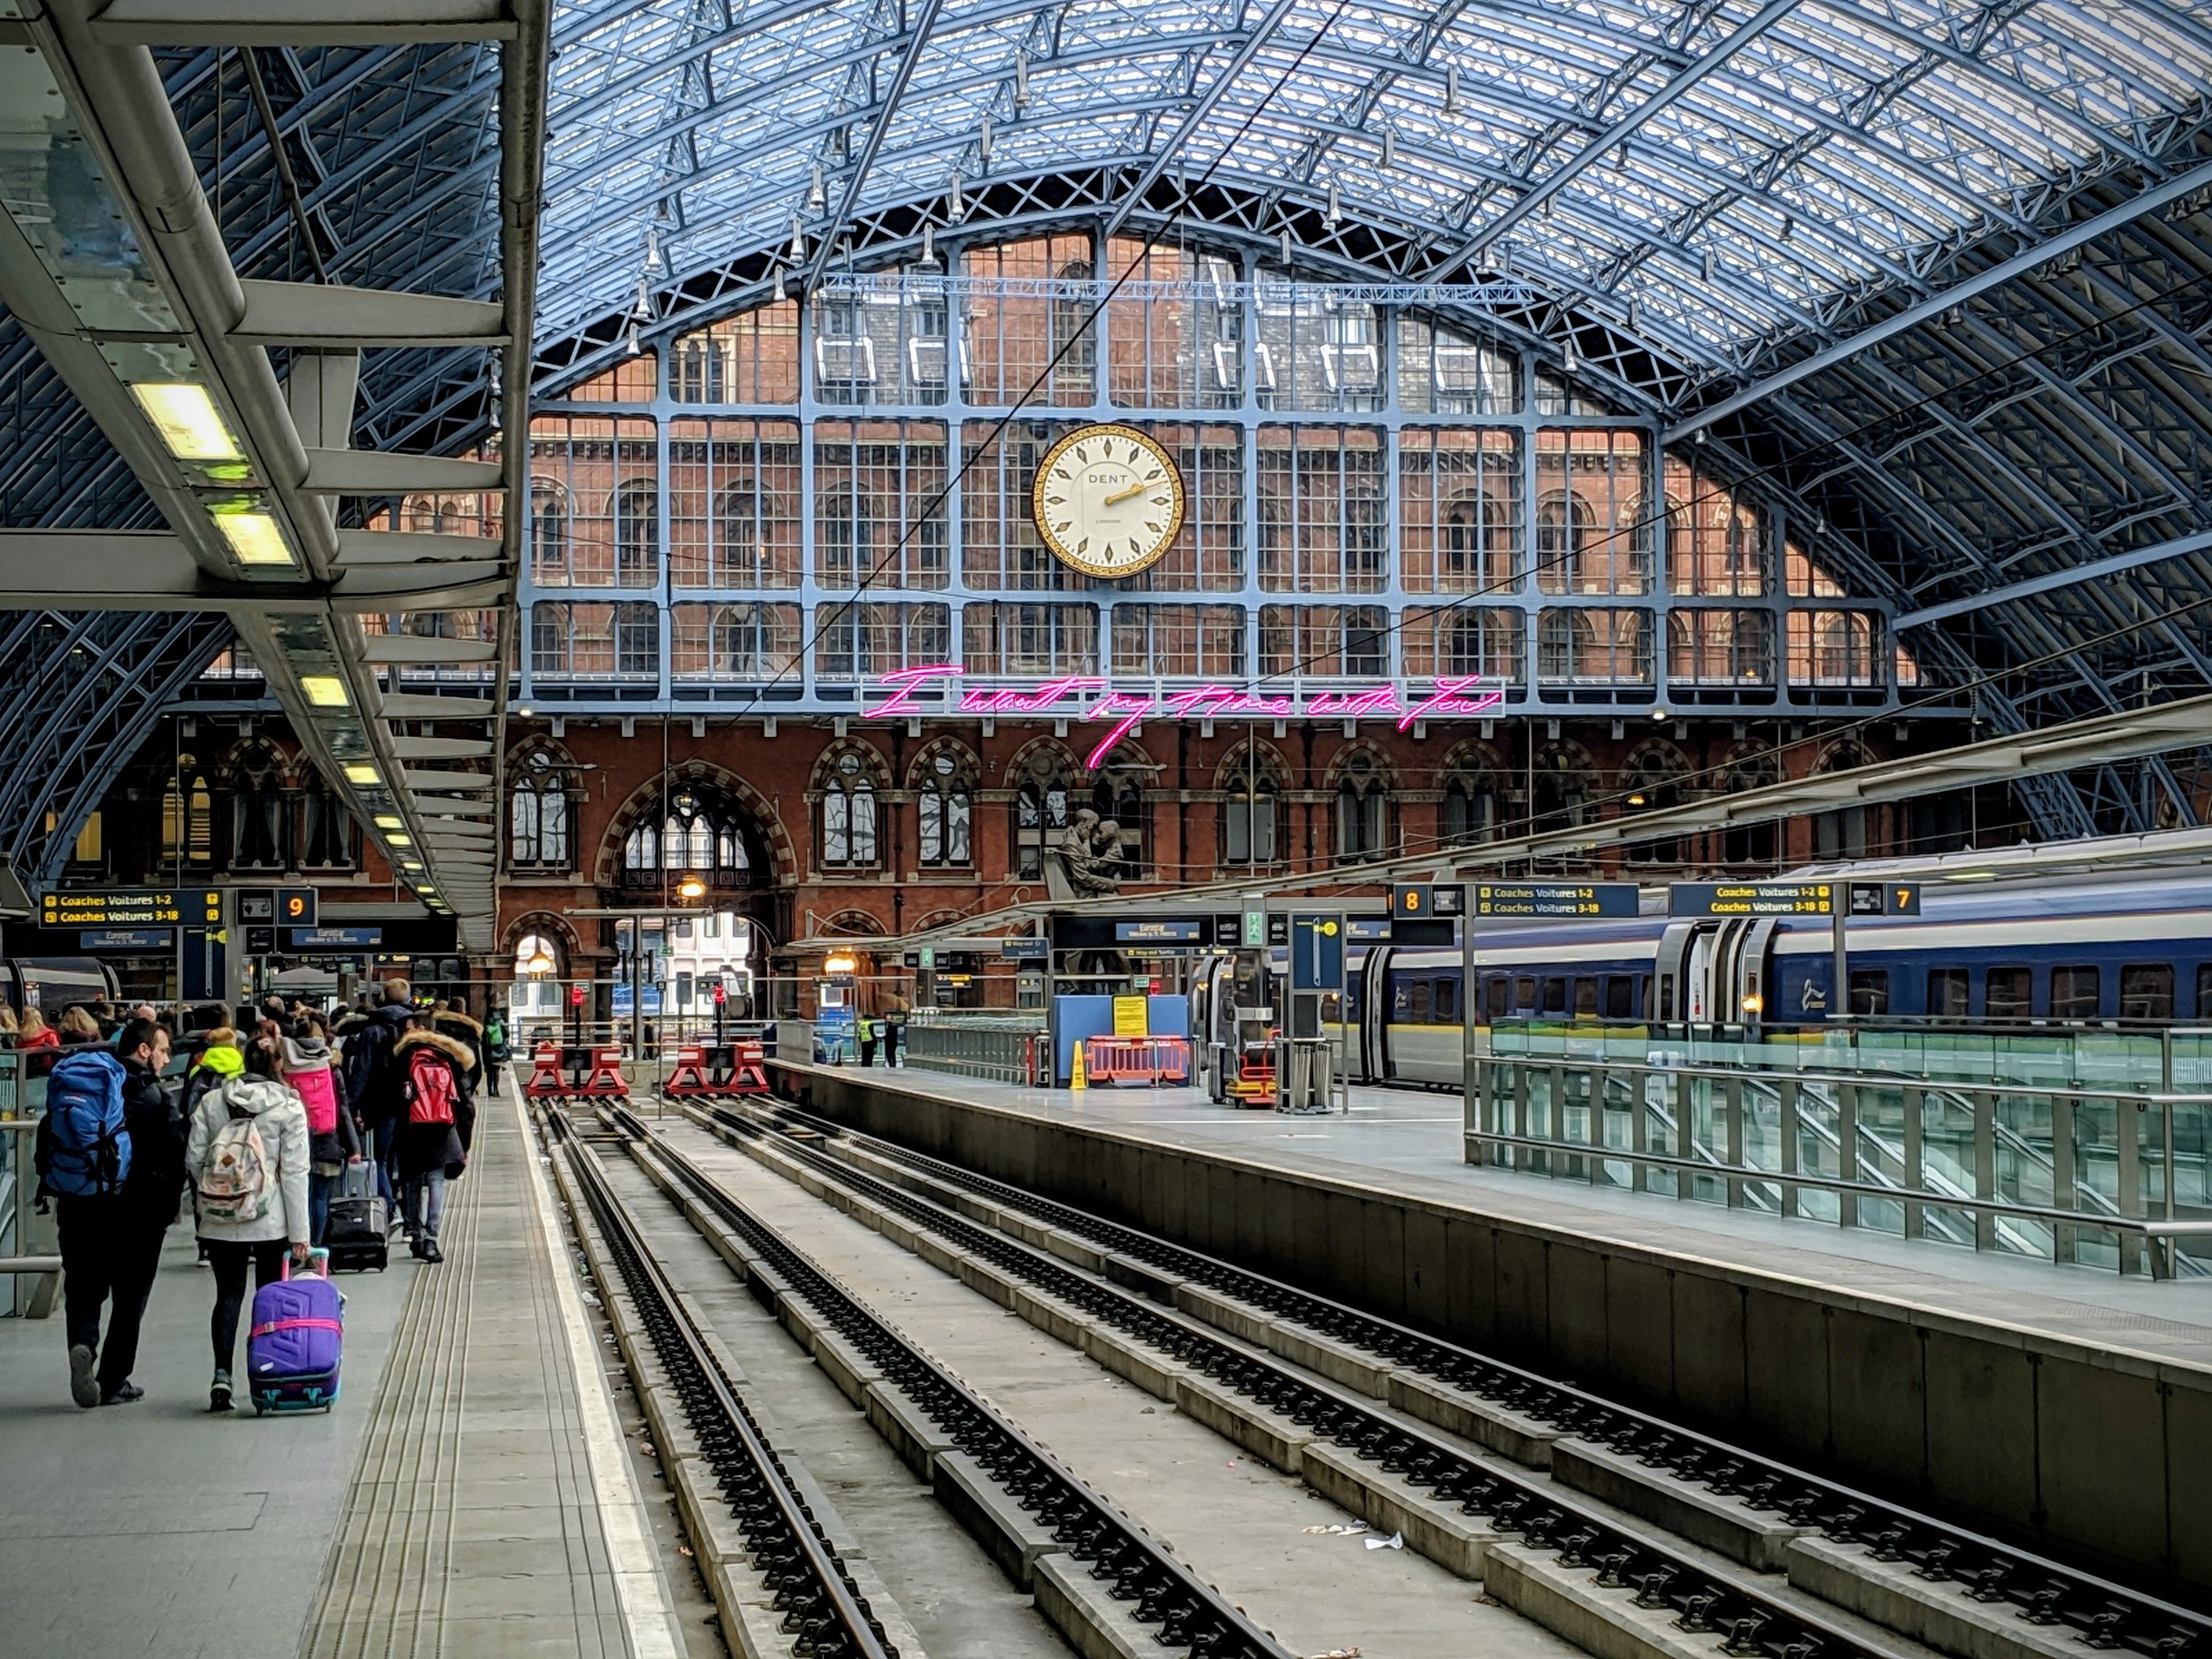 Train stations in London